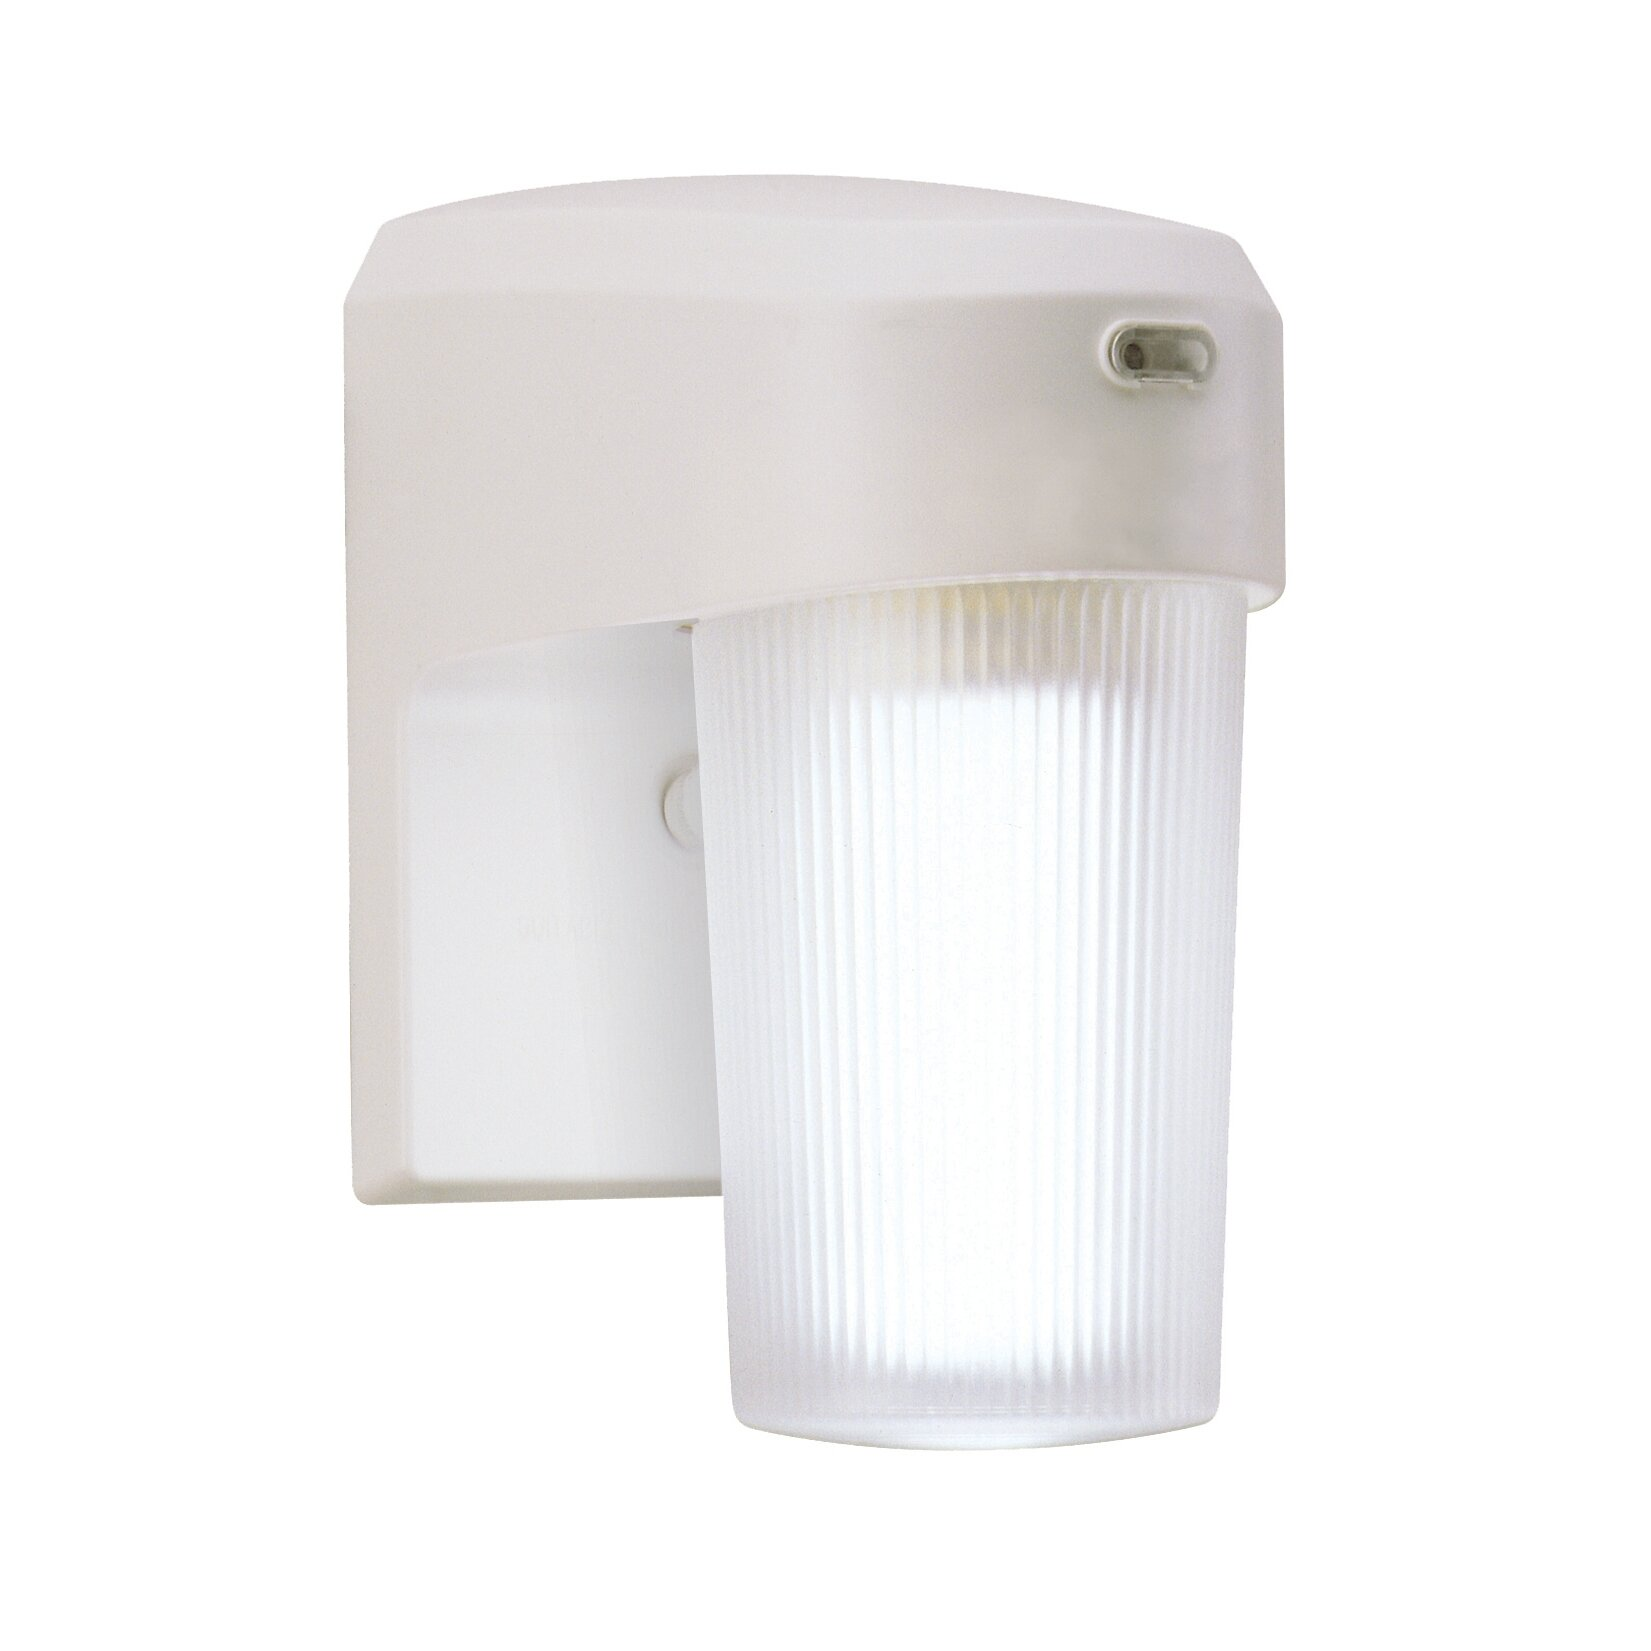 Cooper Lighting 13 Watt CFL Dusk-to-Dawn Light In White